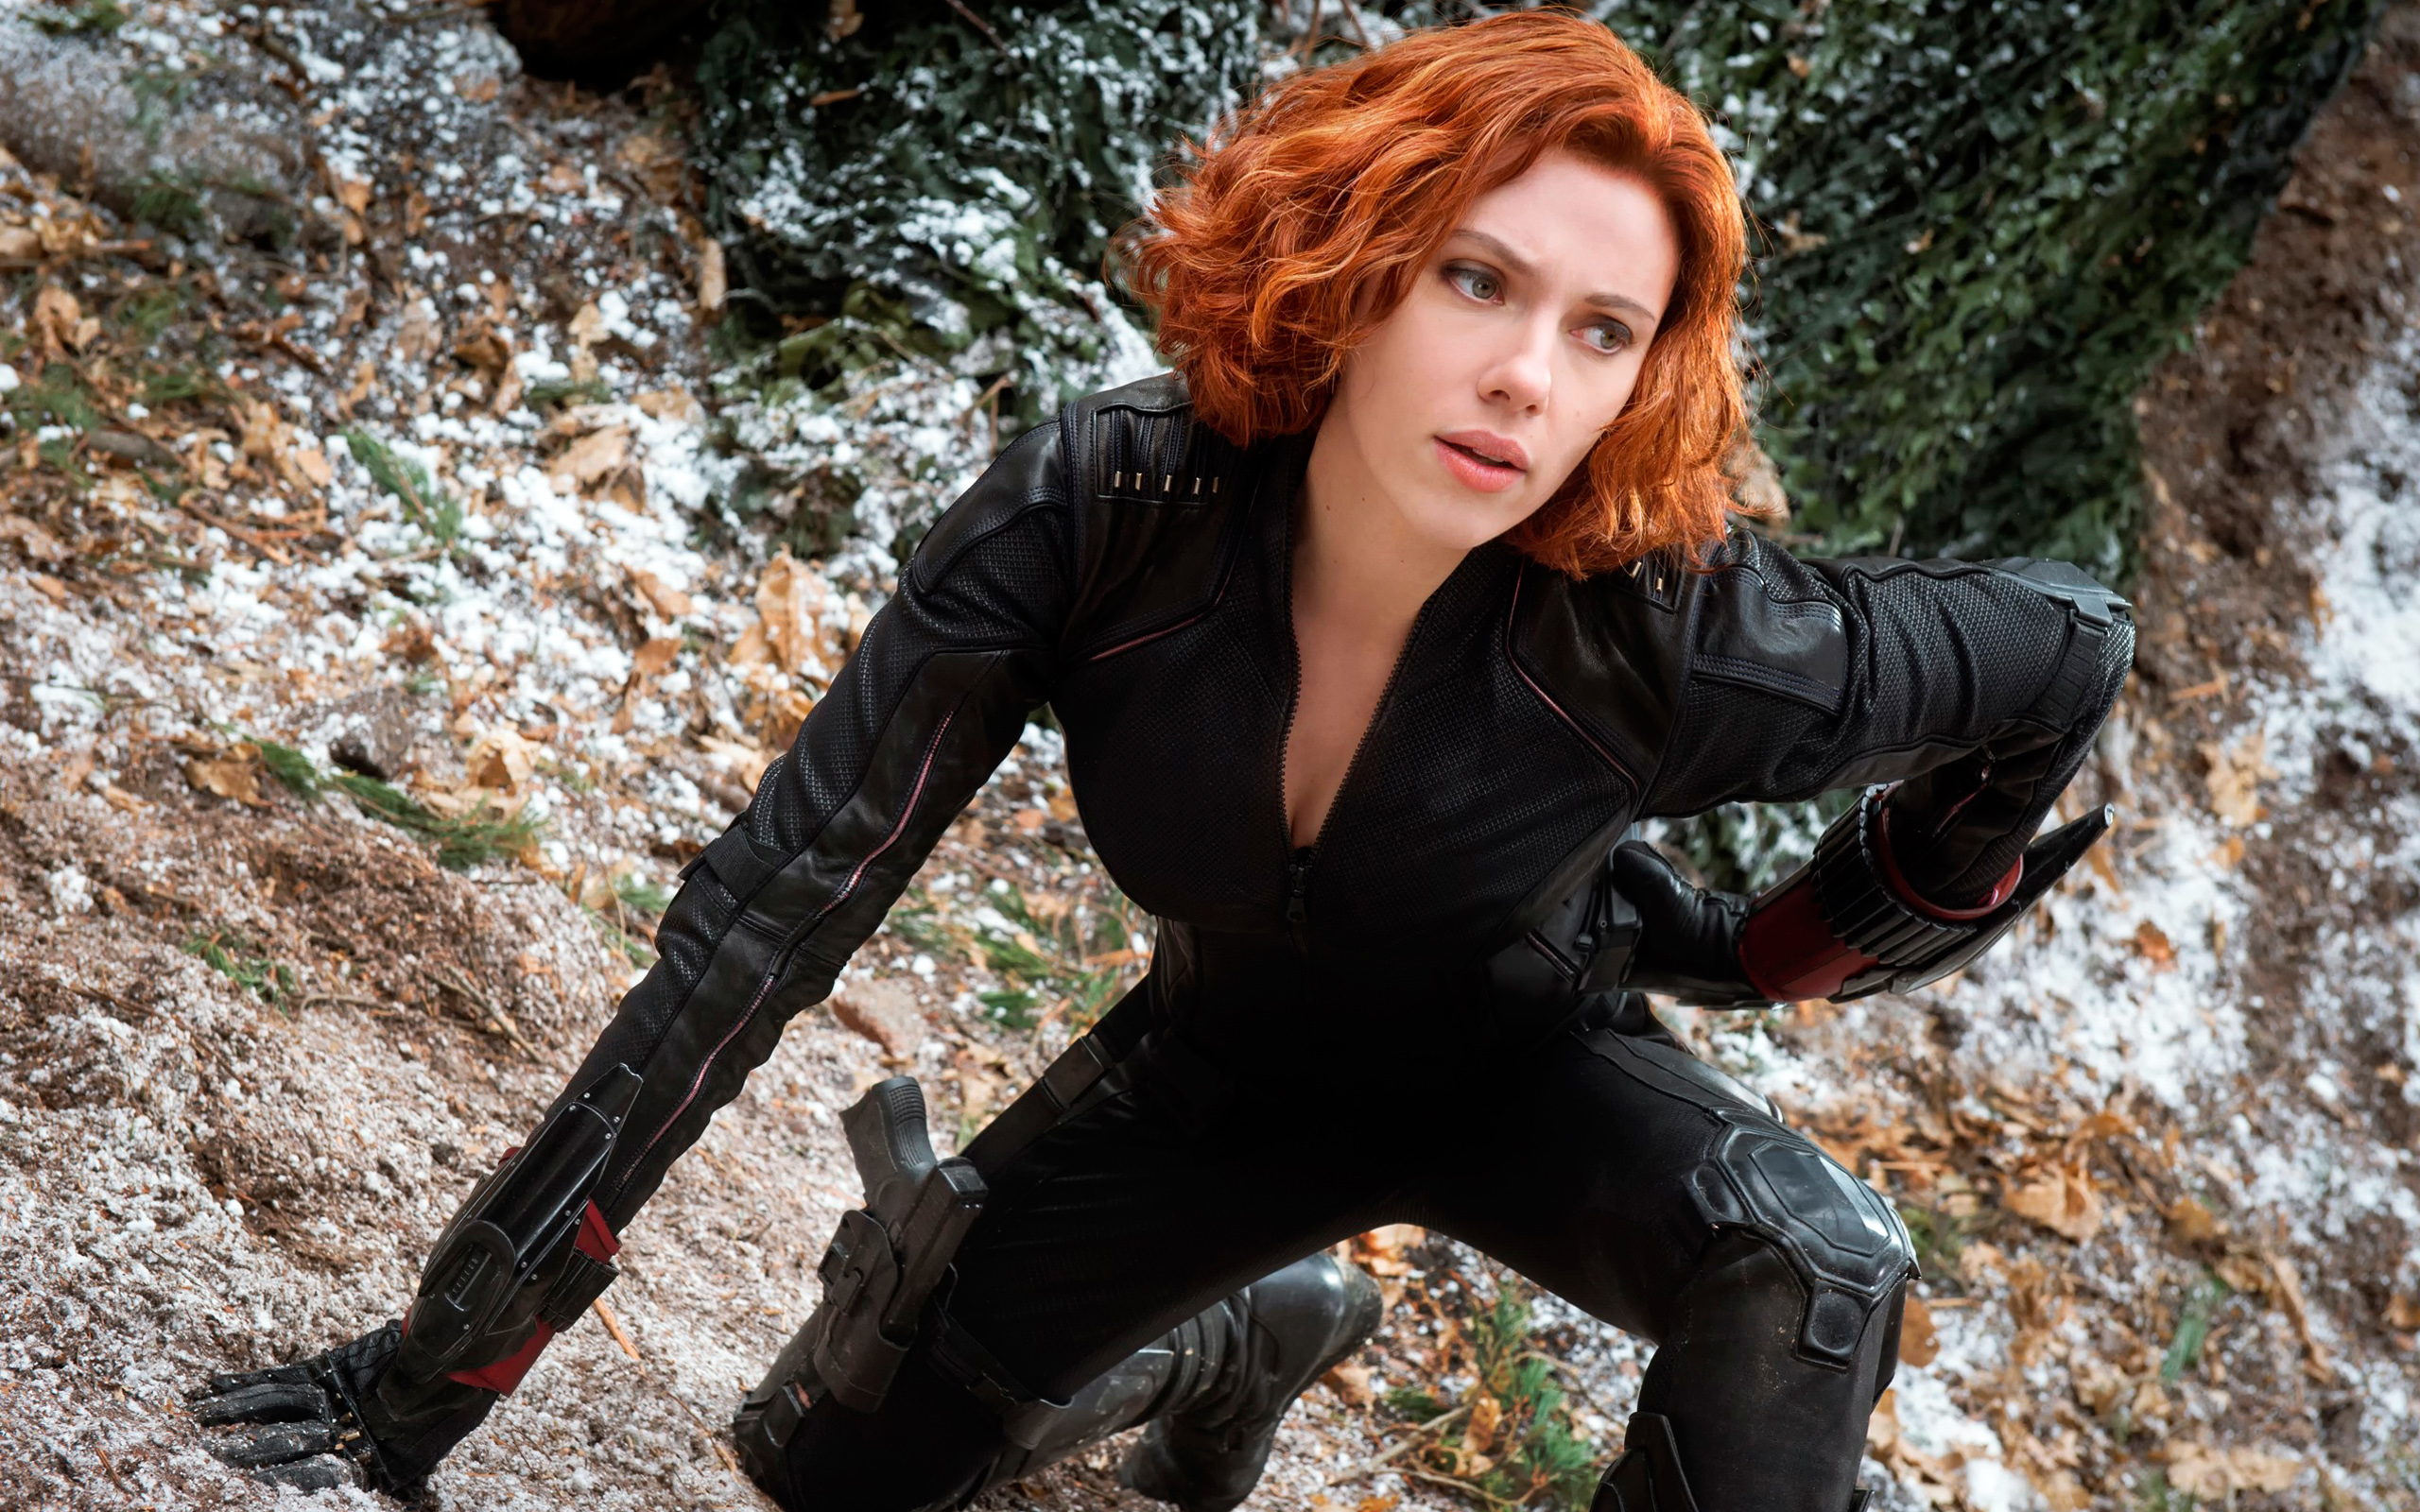 Black Widow in The Avengers 2 Wallpapers HD Wallpapers 2560x1600